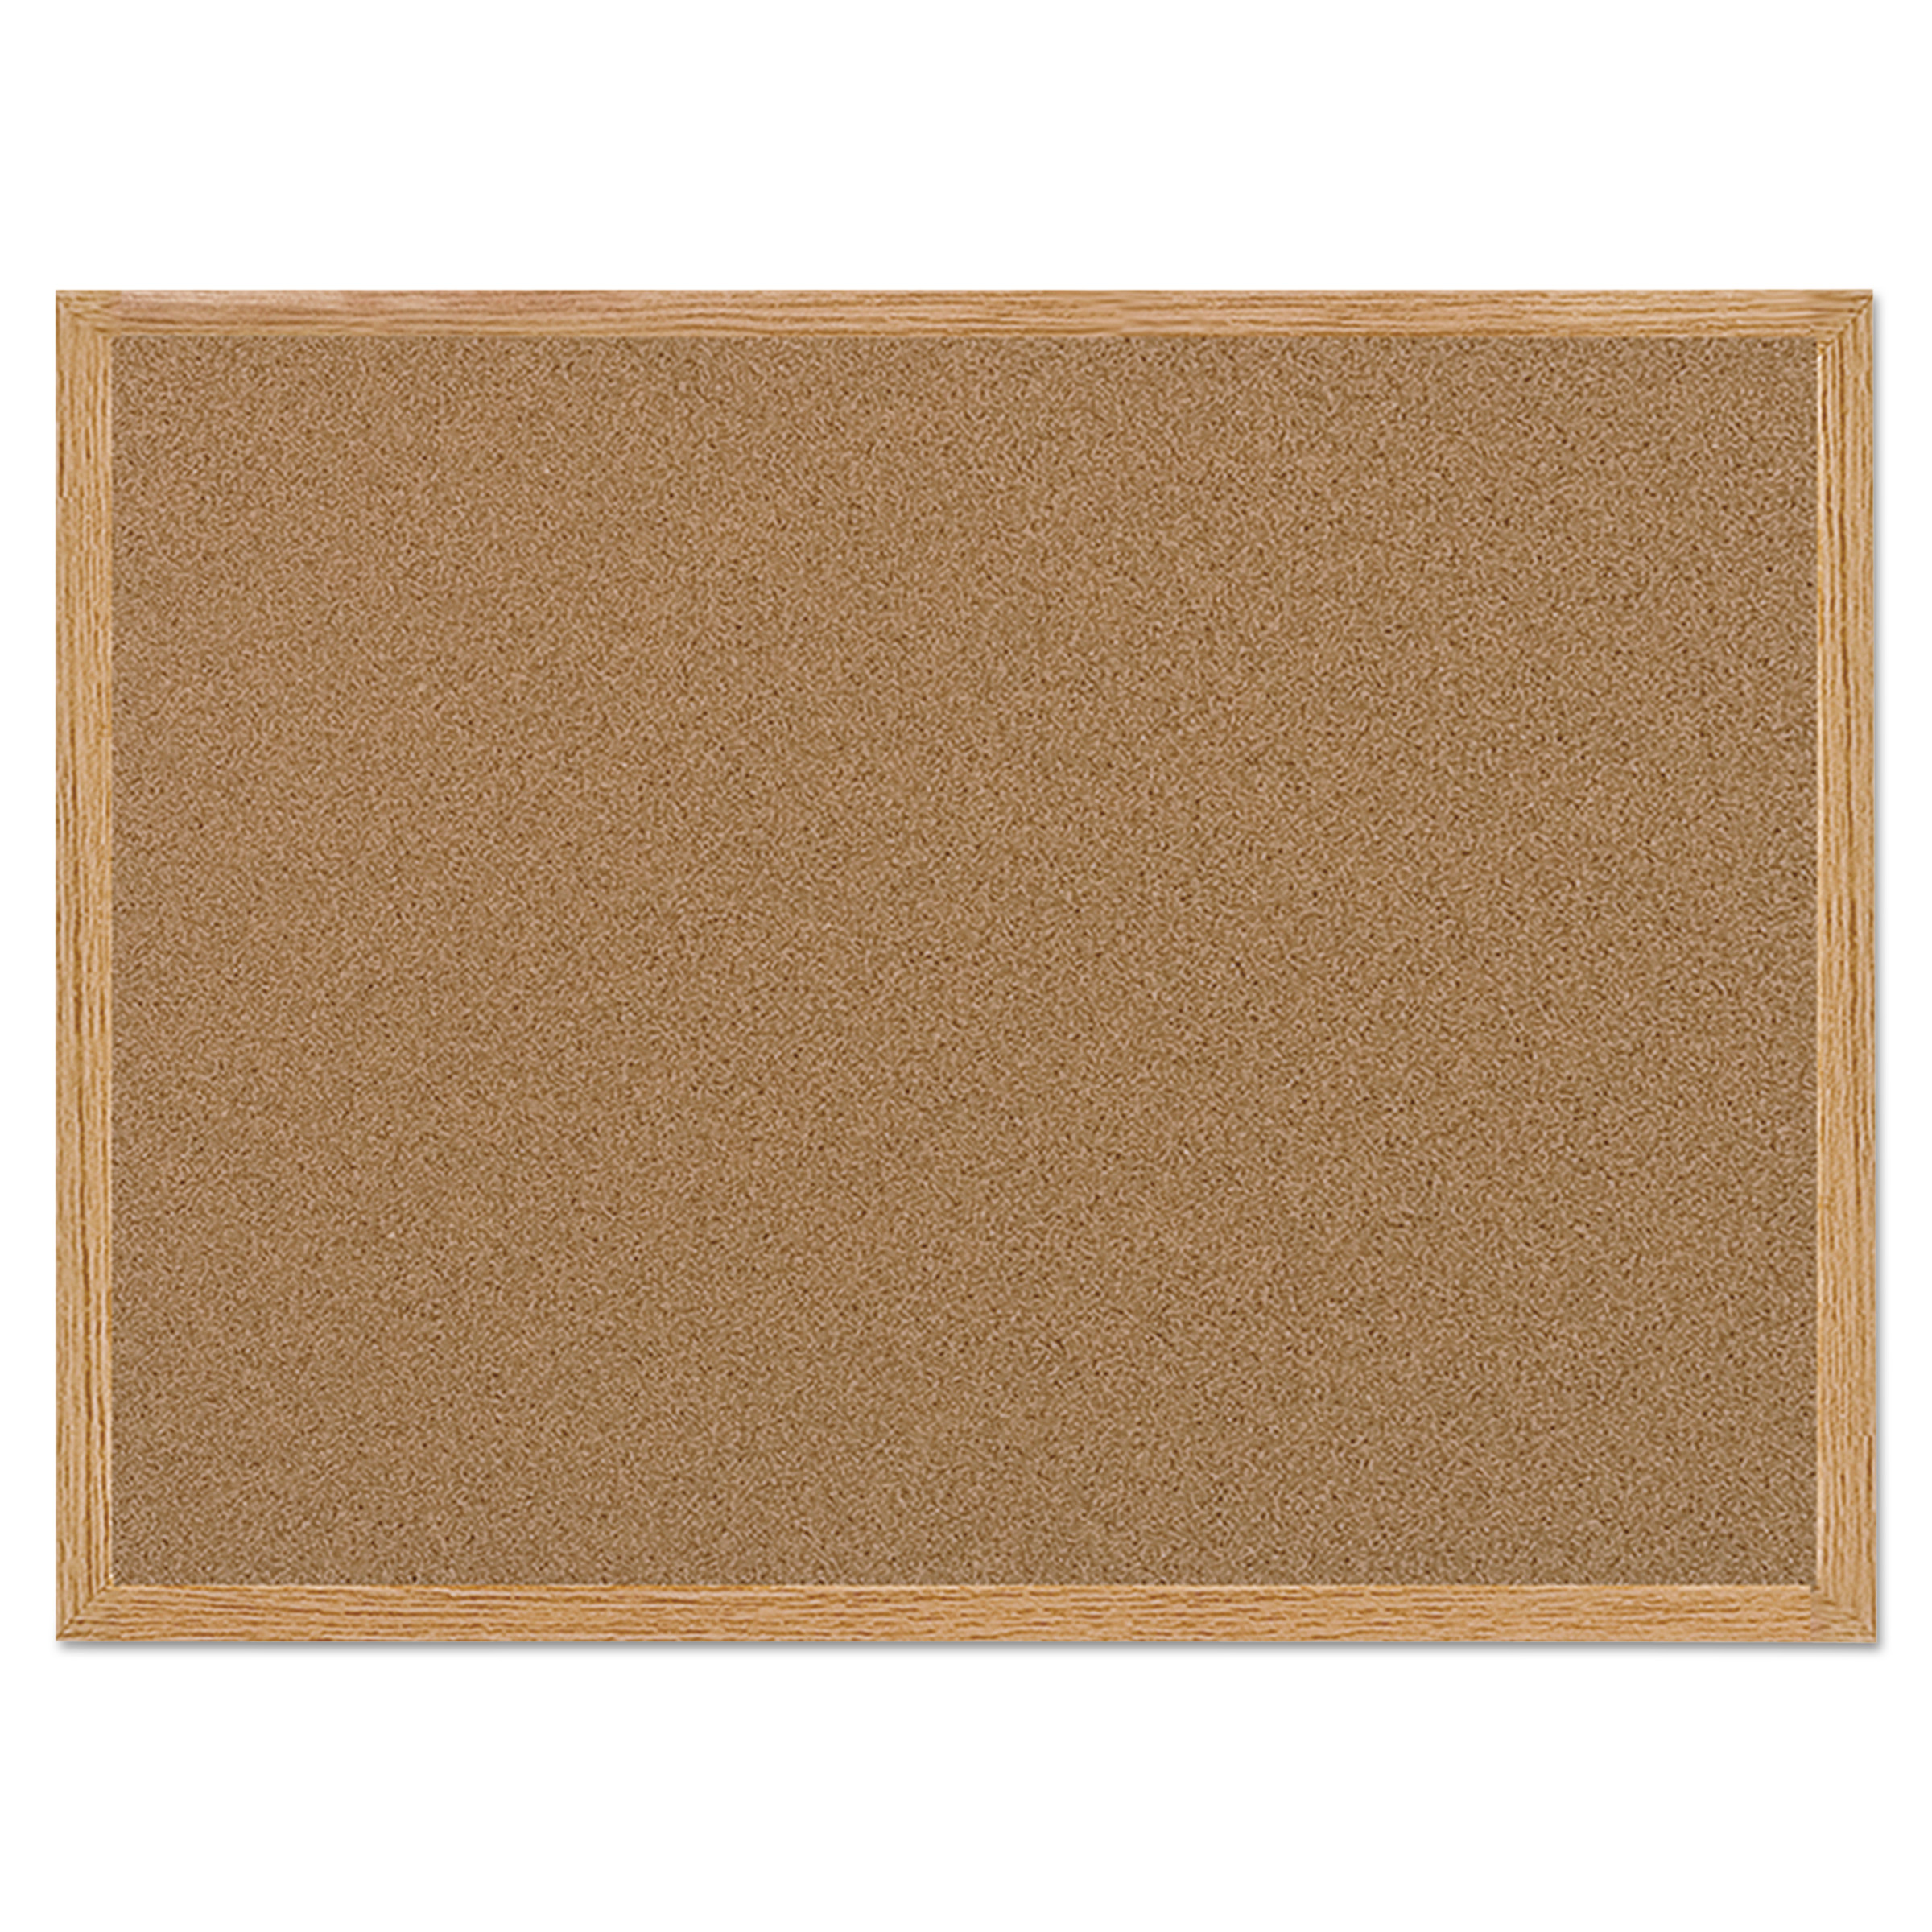 MasterVision Value Cork Bulletin Board with Oak Frame, 24 x 36, Natural